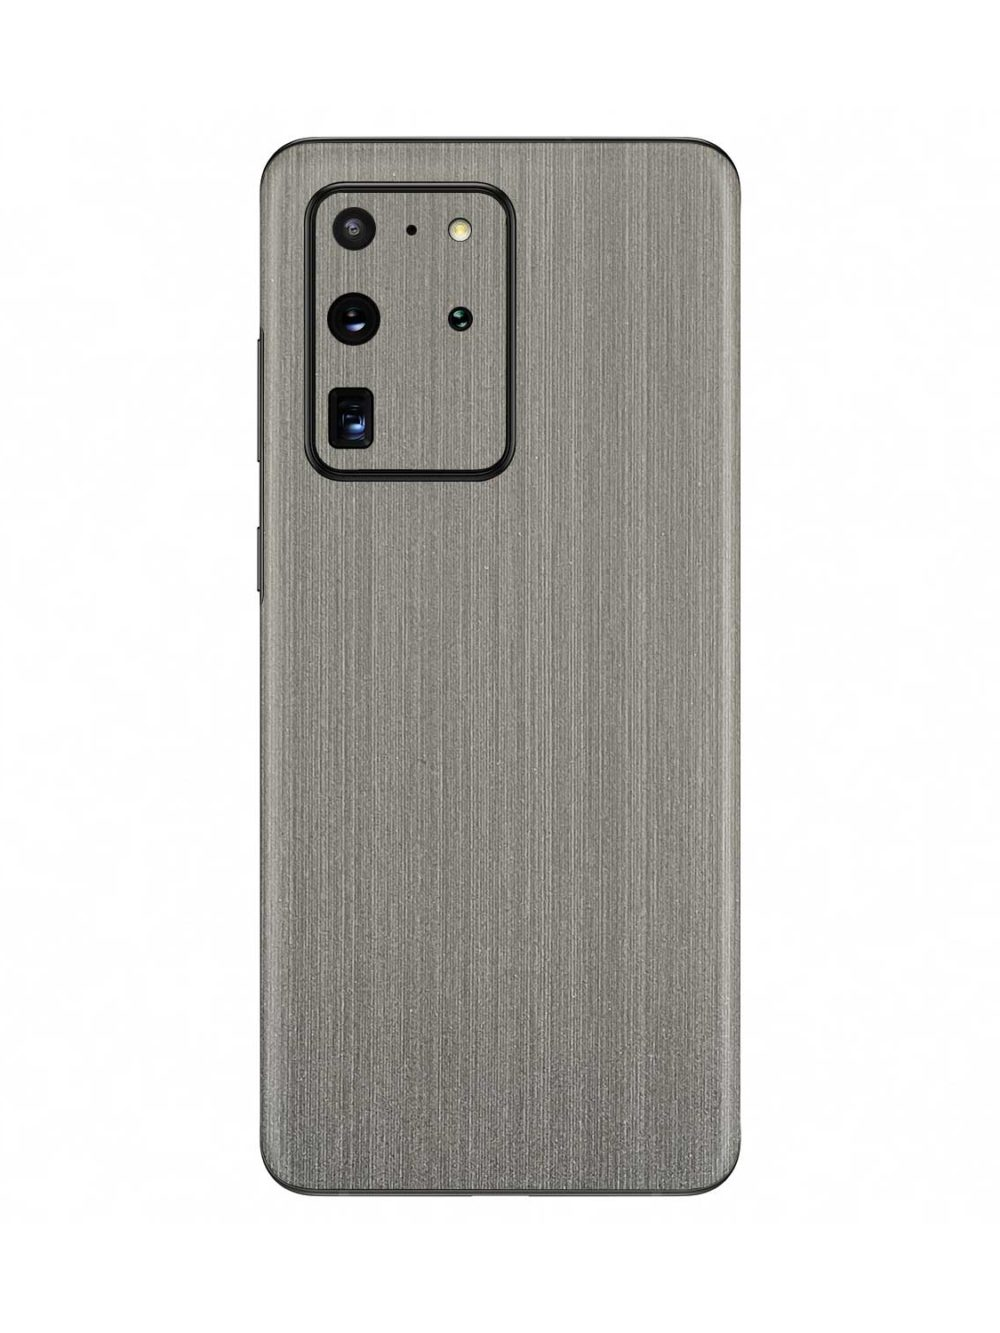 Brushed Silver Metallic skin for Samsung Galaxy S20 Ultra